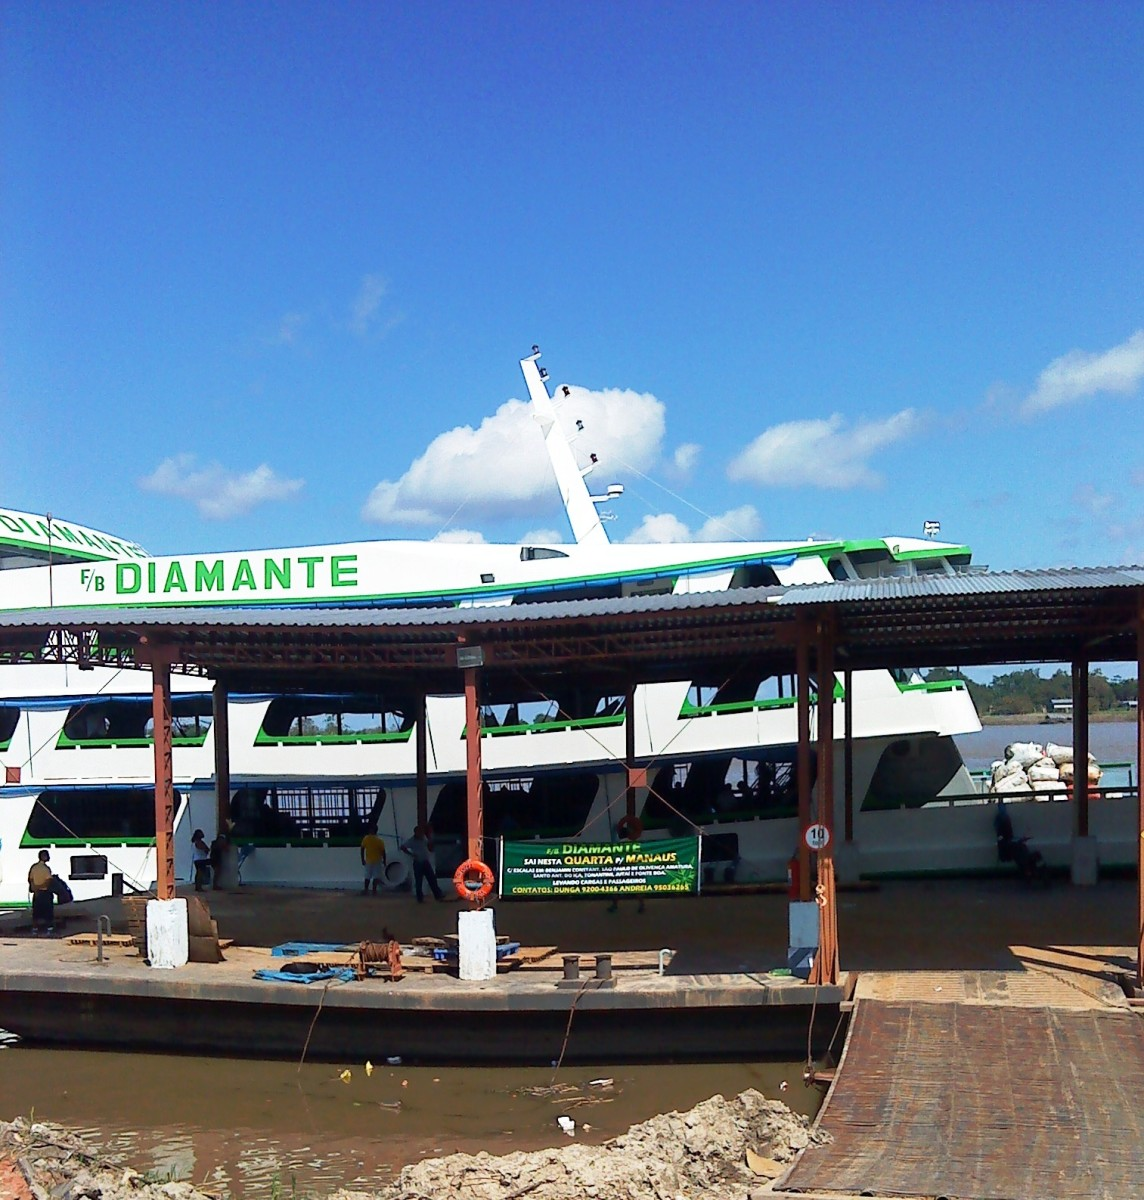 The Diamante at Dock in Tabatinga